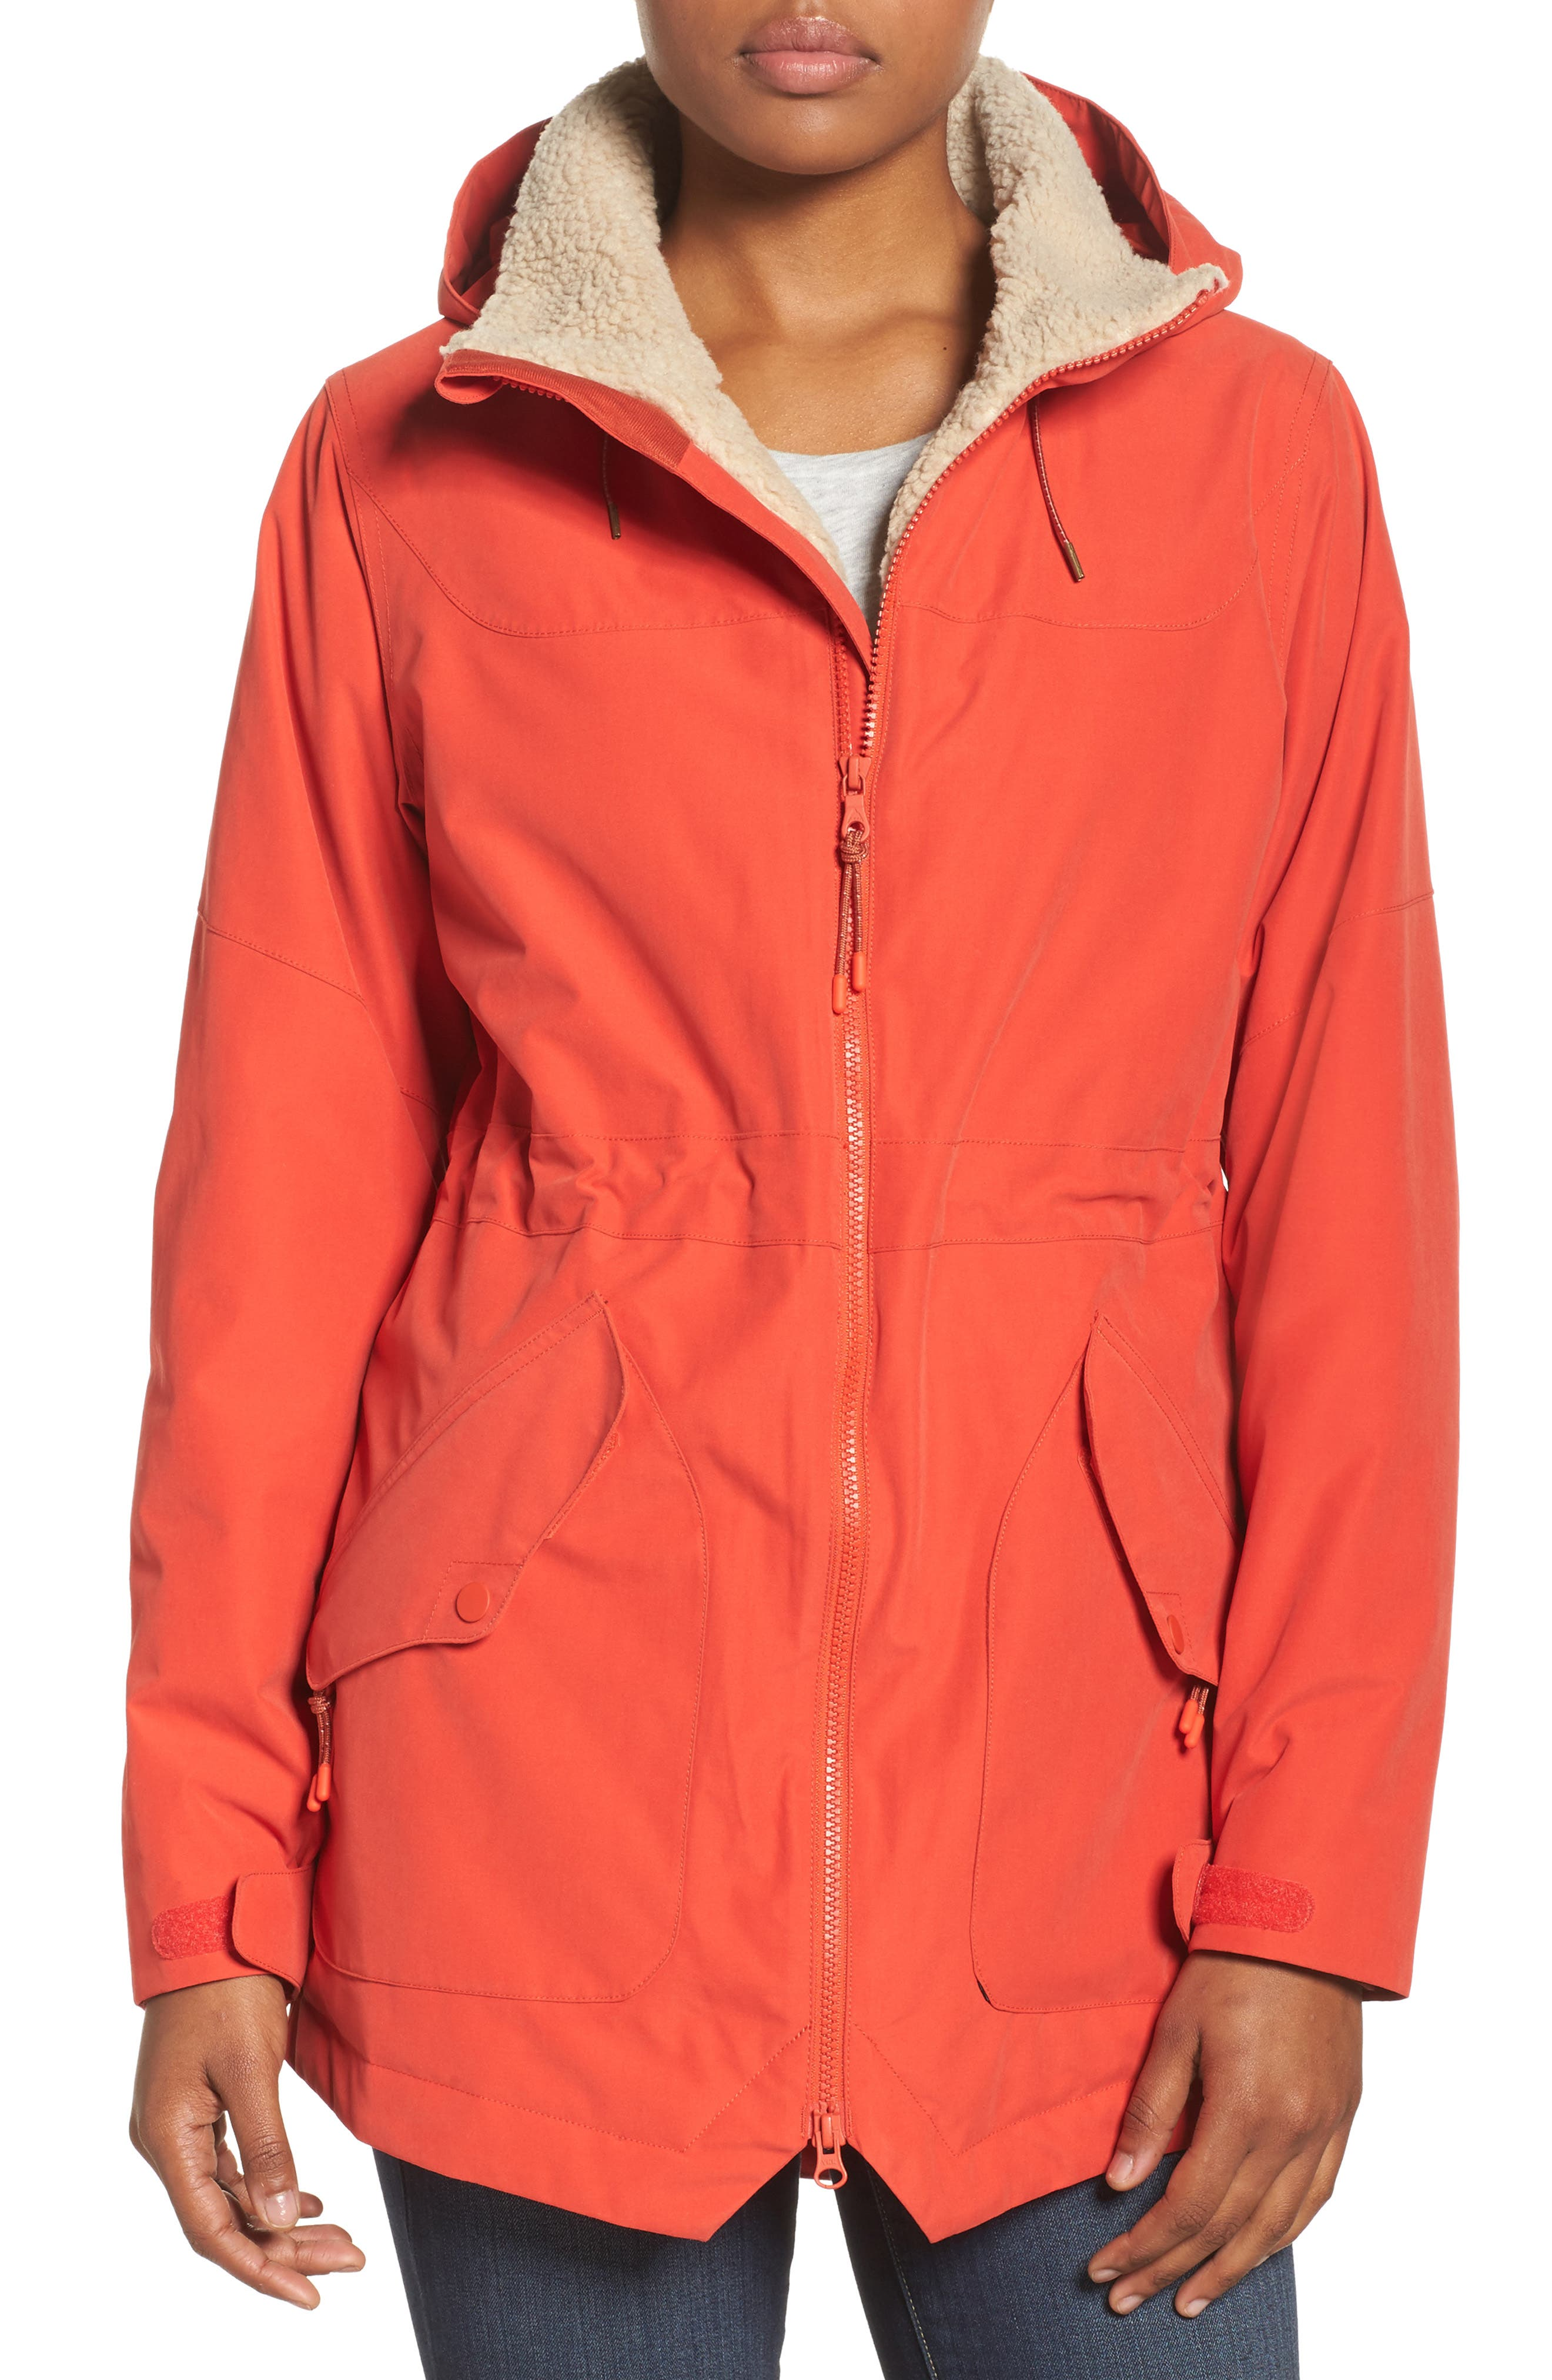 Prowess Fleece Lined Water Resistant Jacket,                         Main,                         color, FIERY RED SUEDED